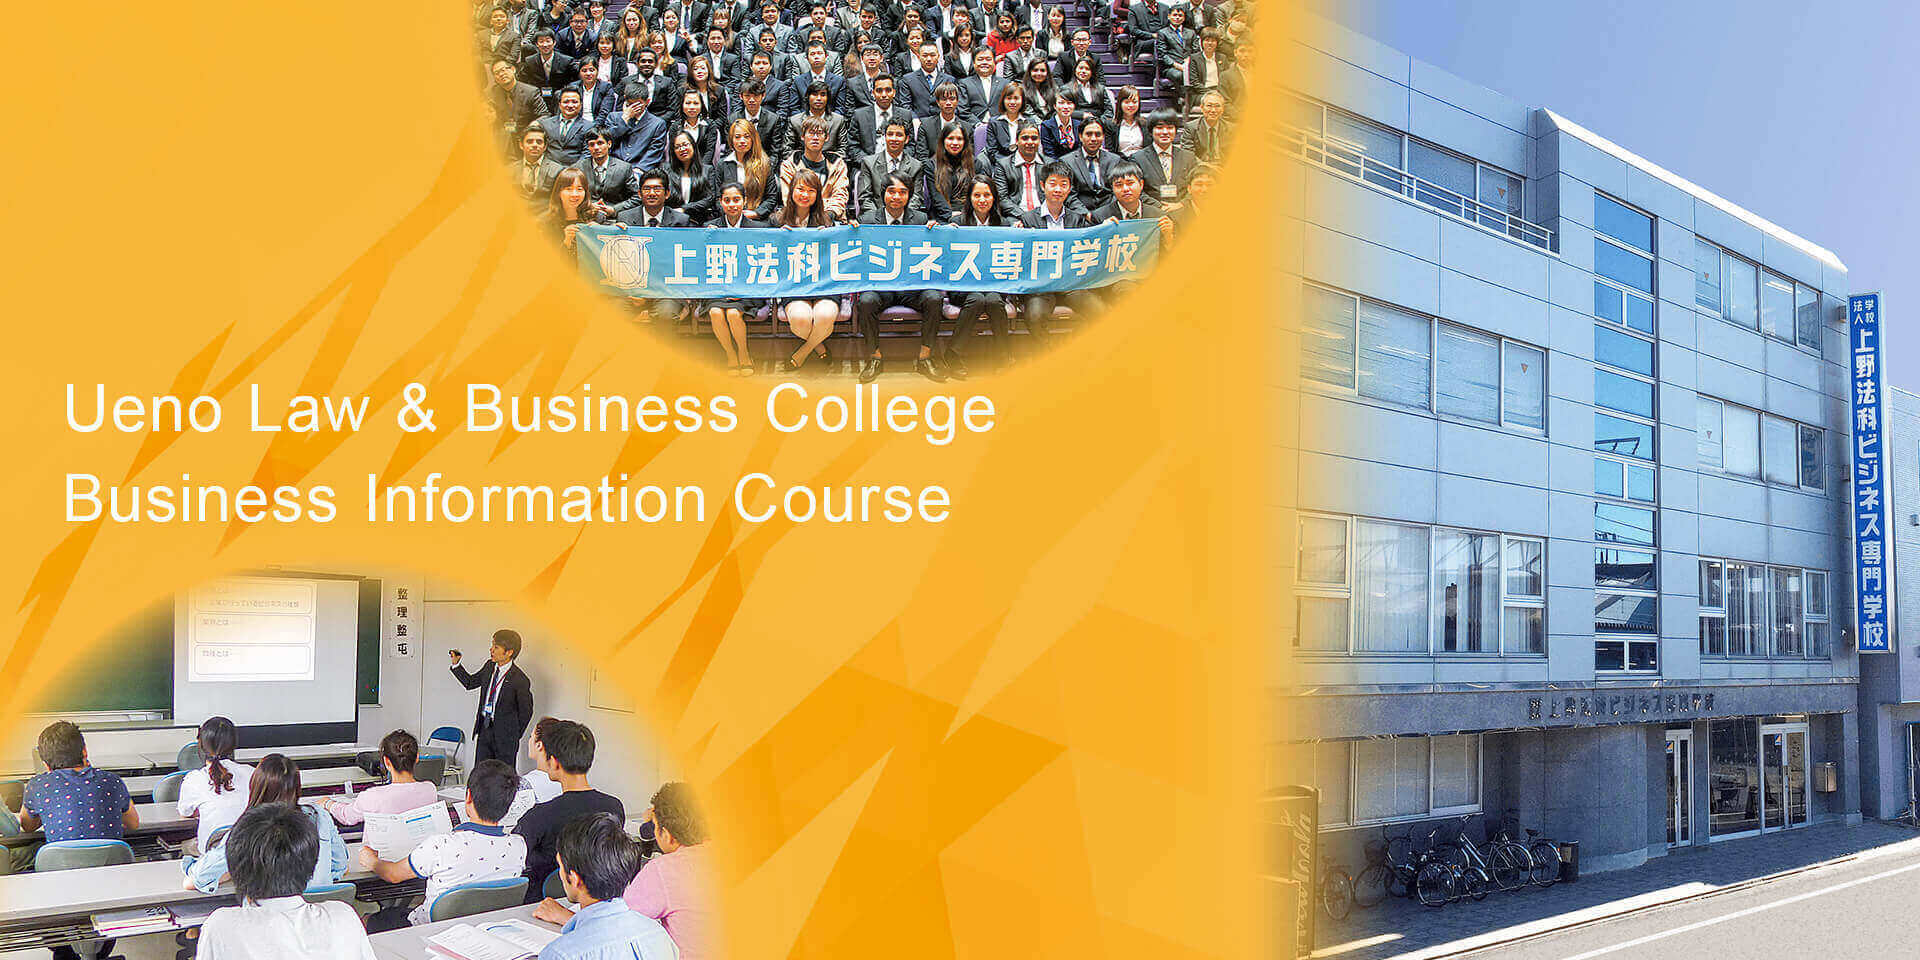 Ueno Law & Business College Business Information Course